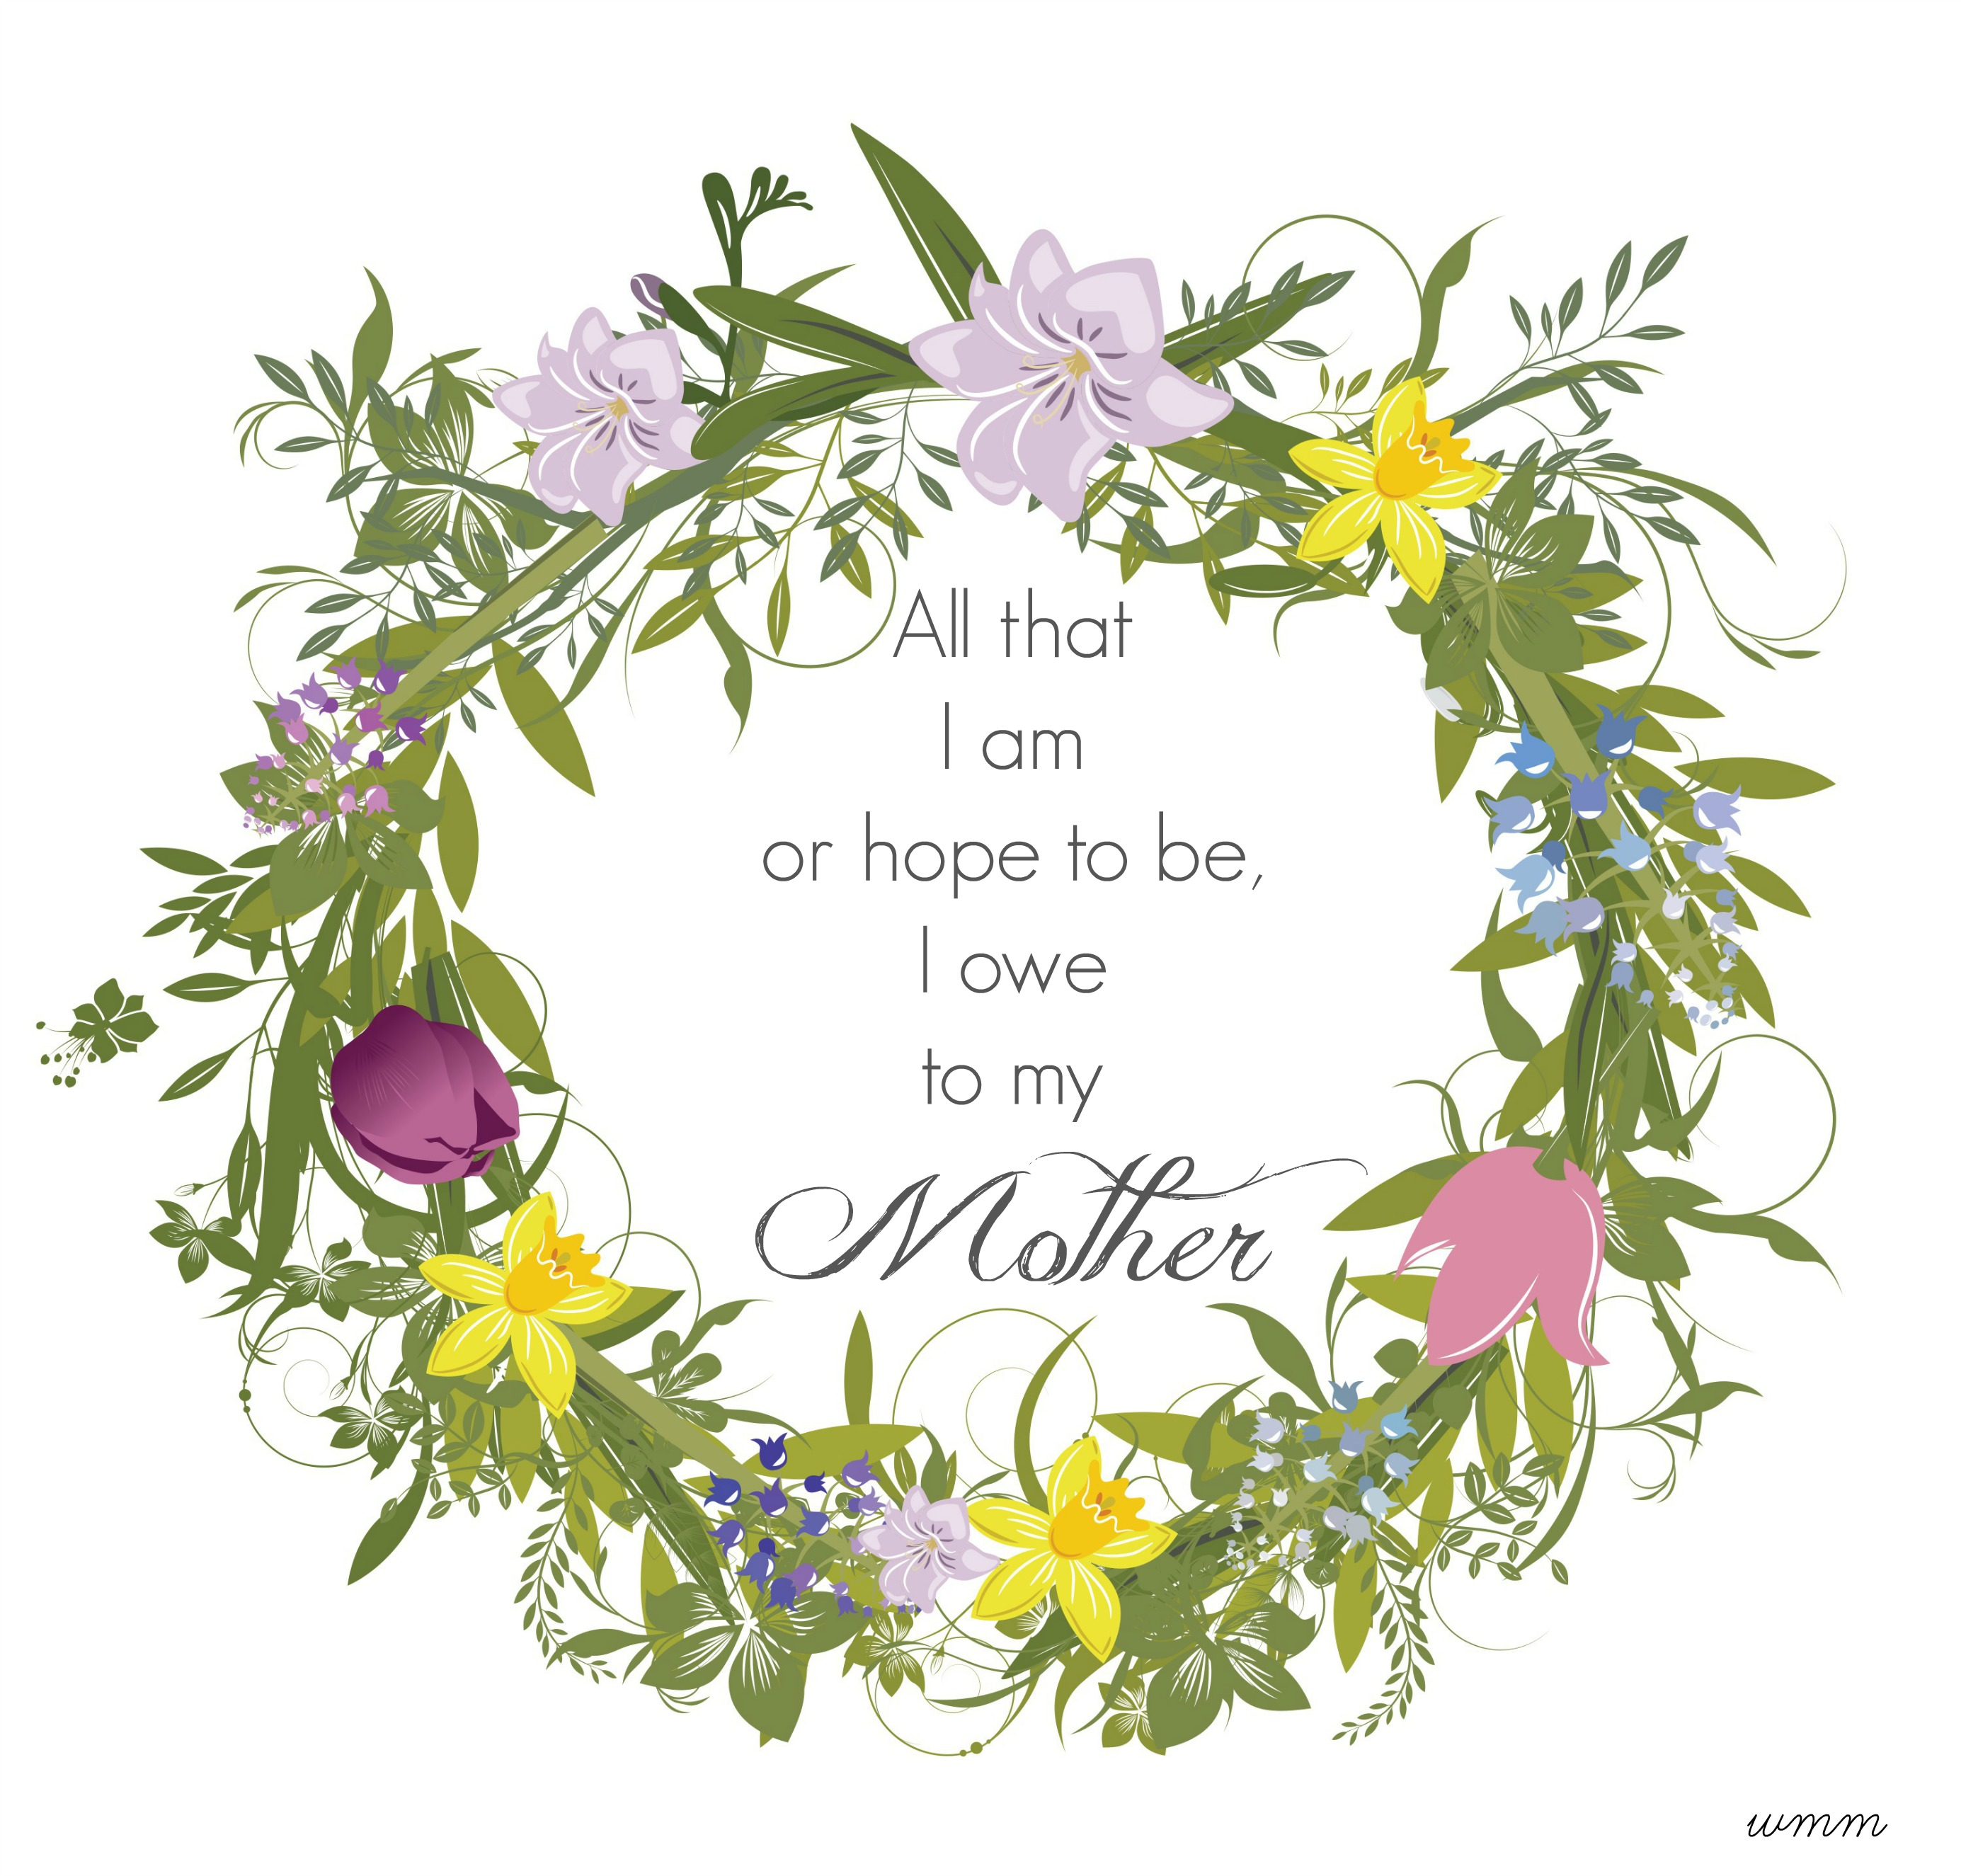 All that I am or hope to be, I owe to my Mother by meeganmakes.com